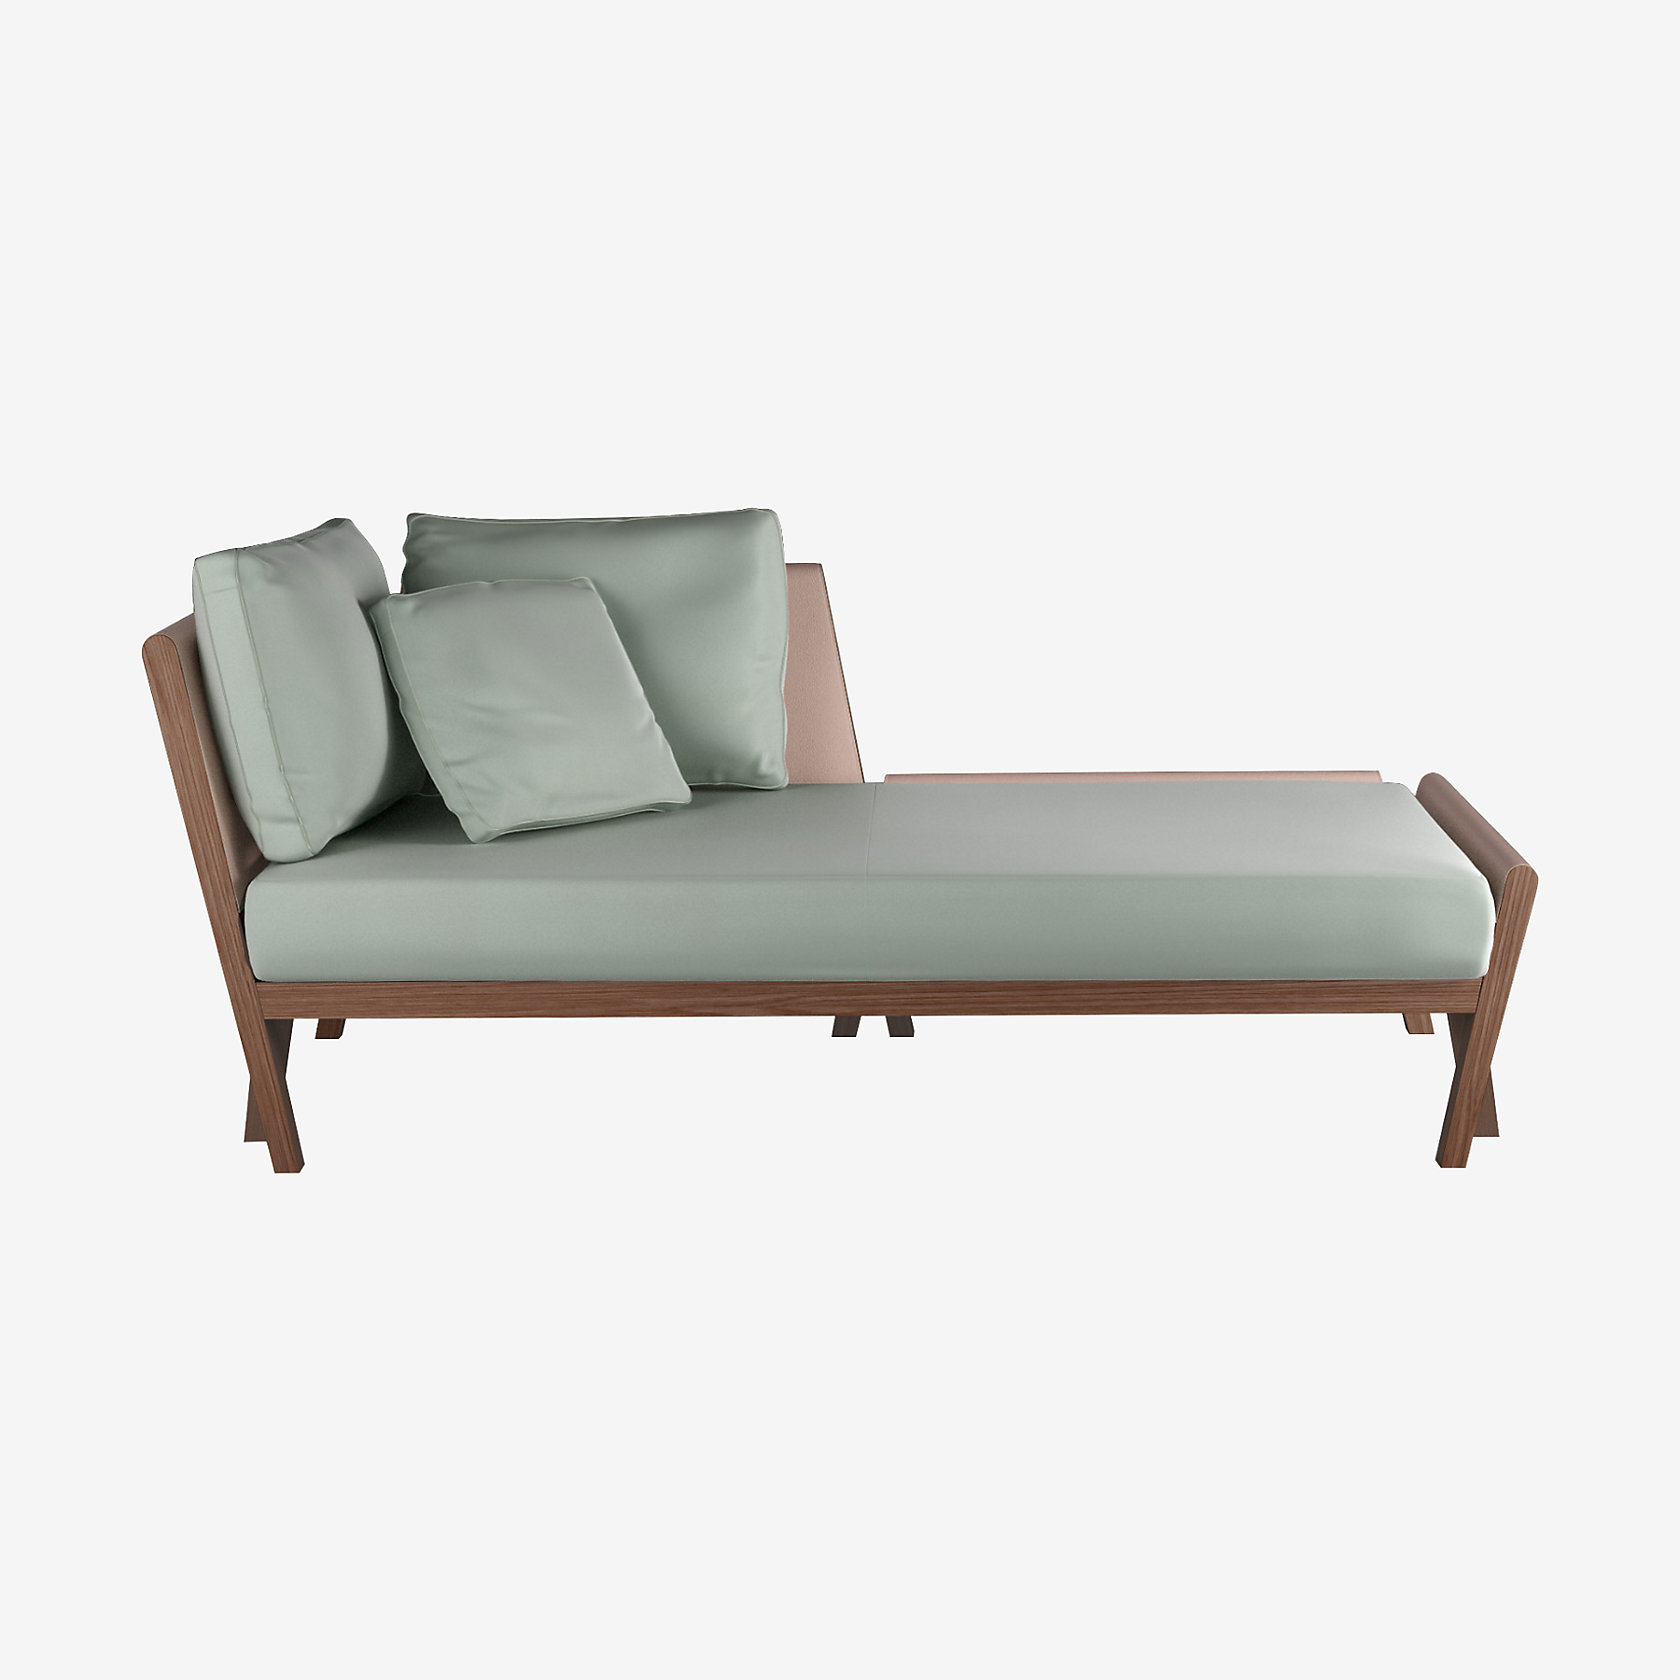 daybed outdoor matieres daybed herms